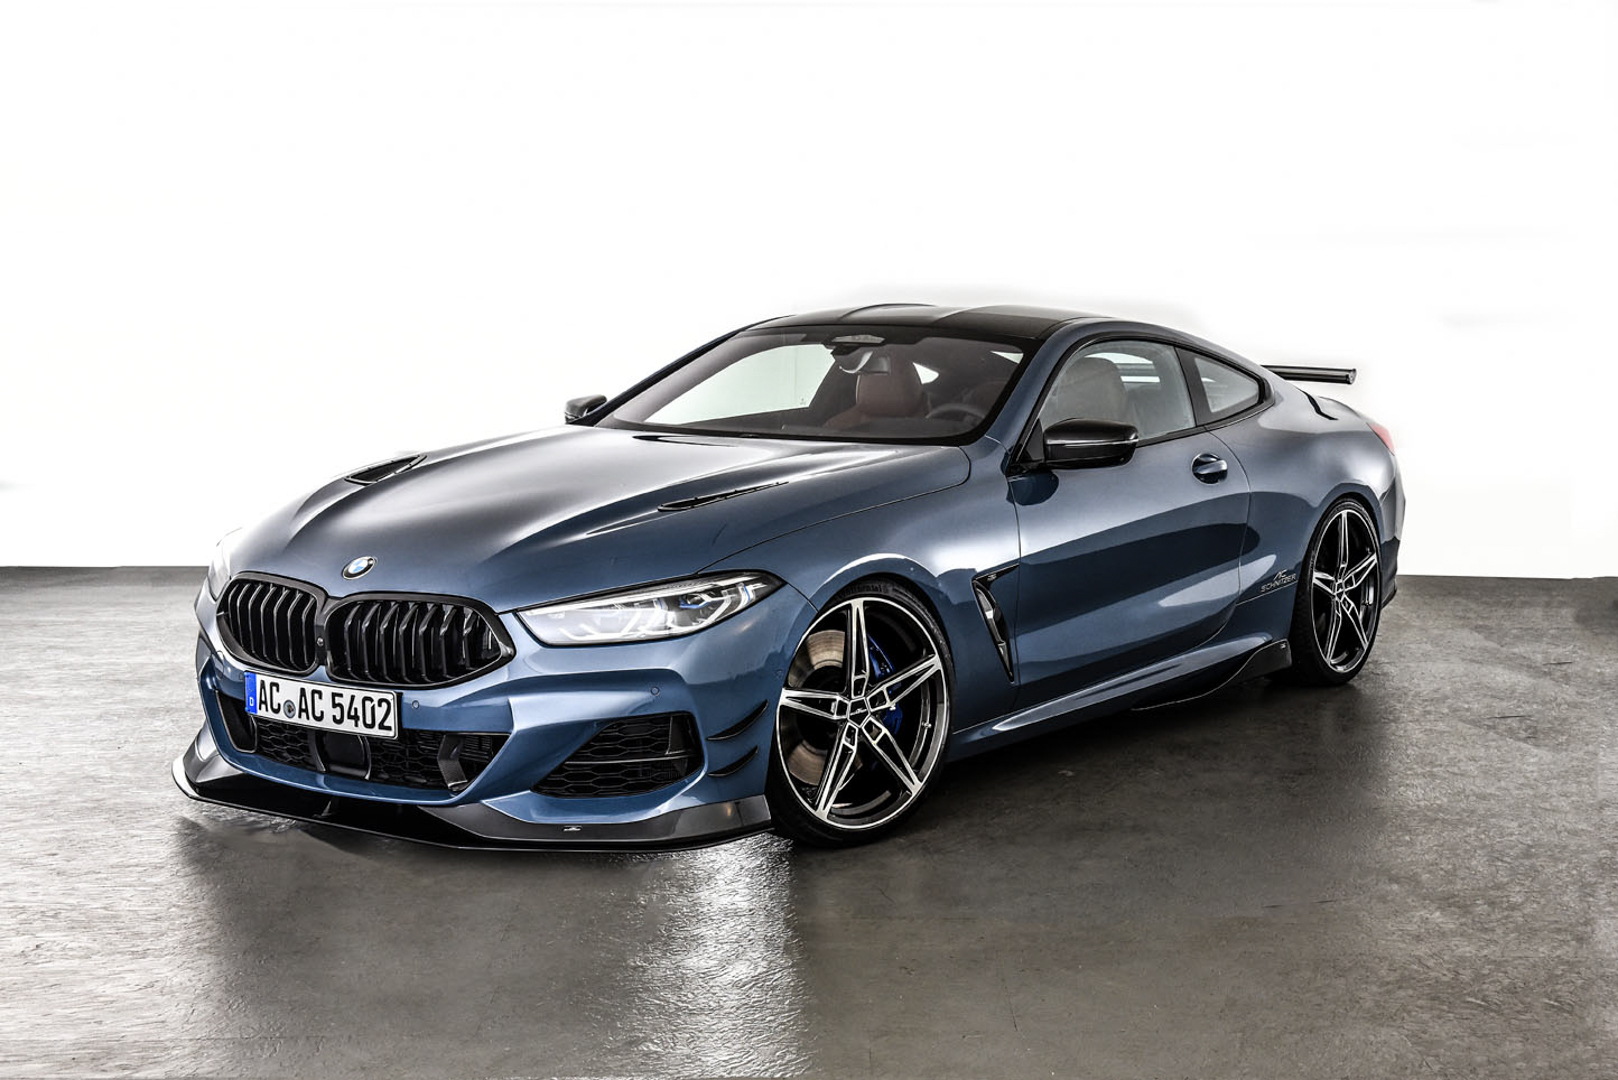 Evolve shows us the AC Schnitzer BMW M850i